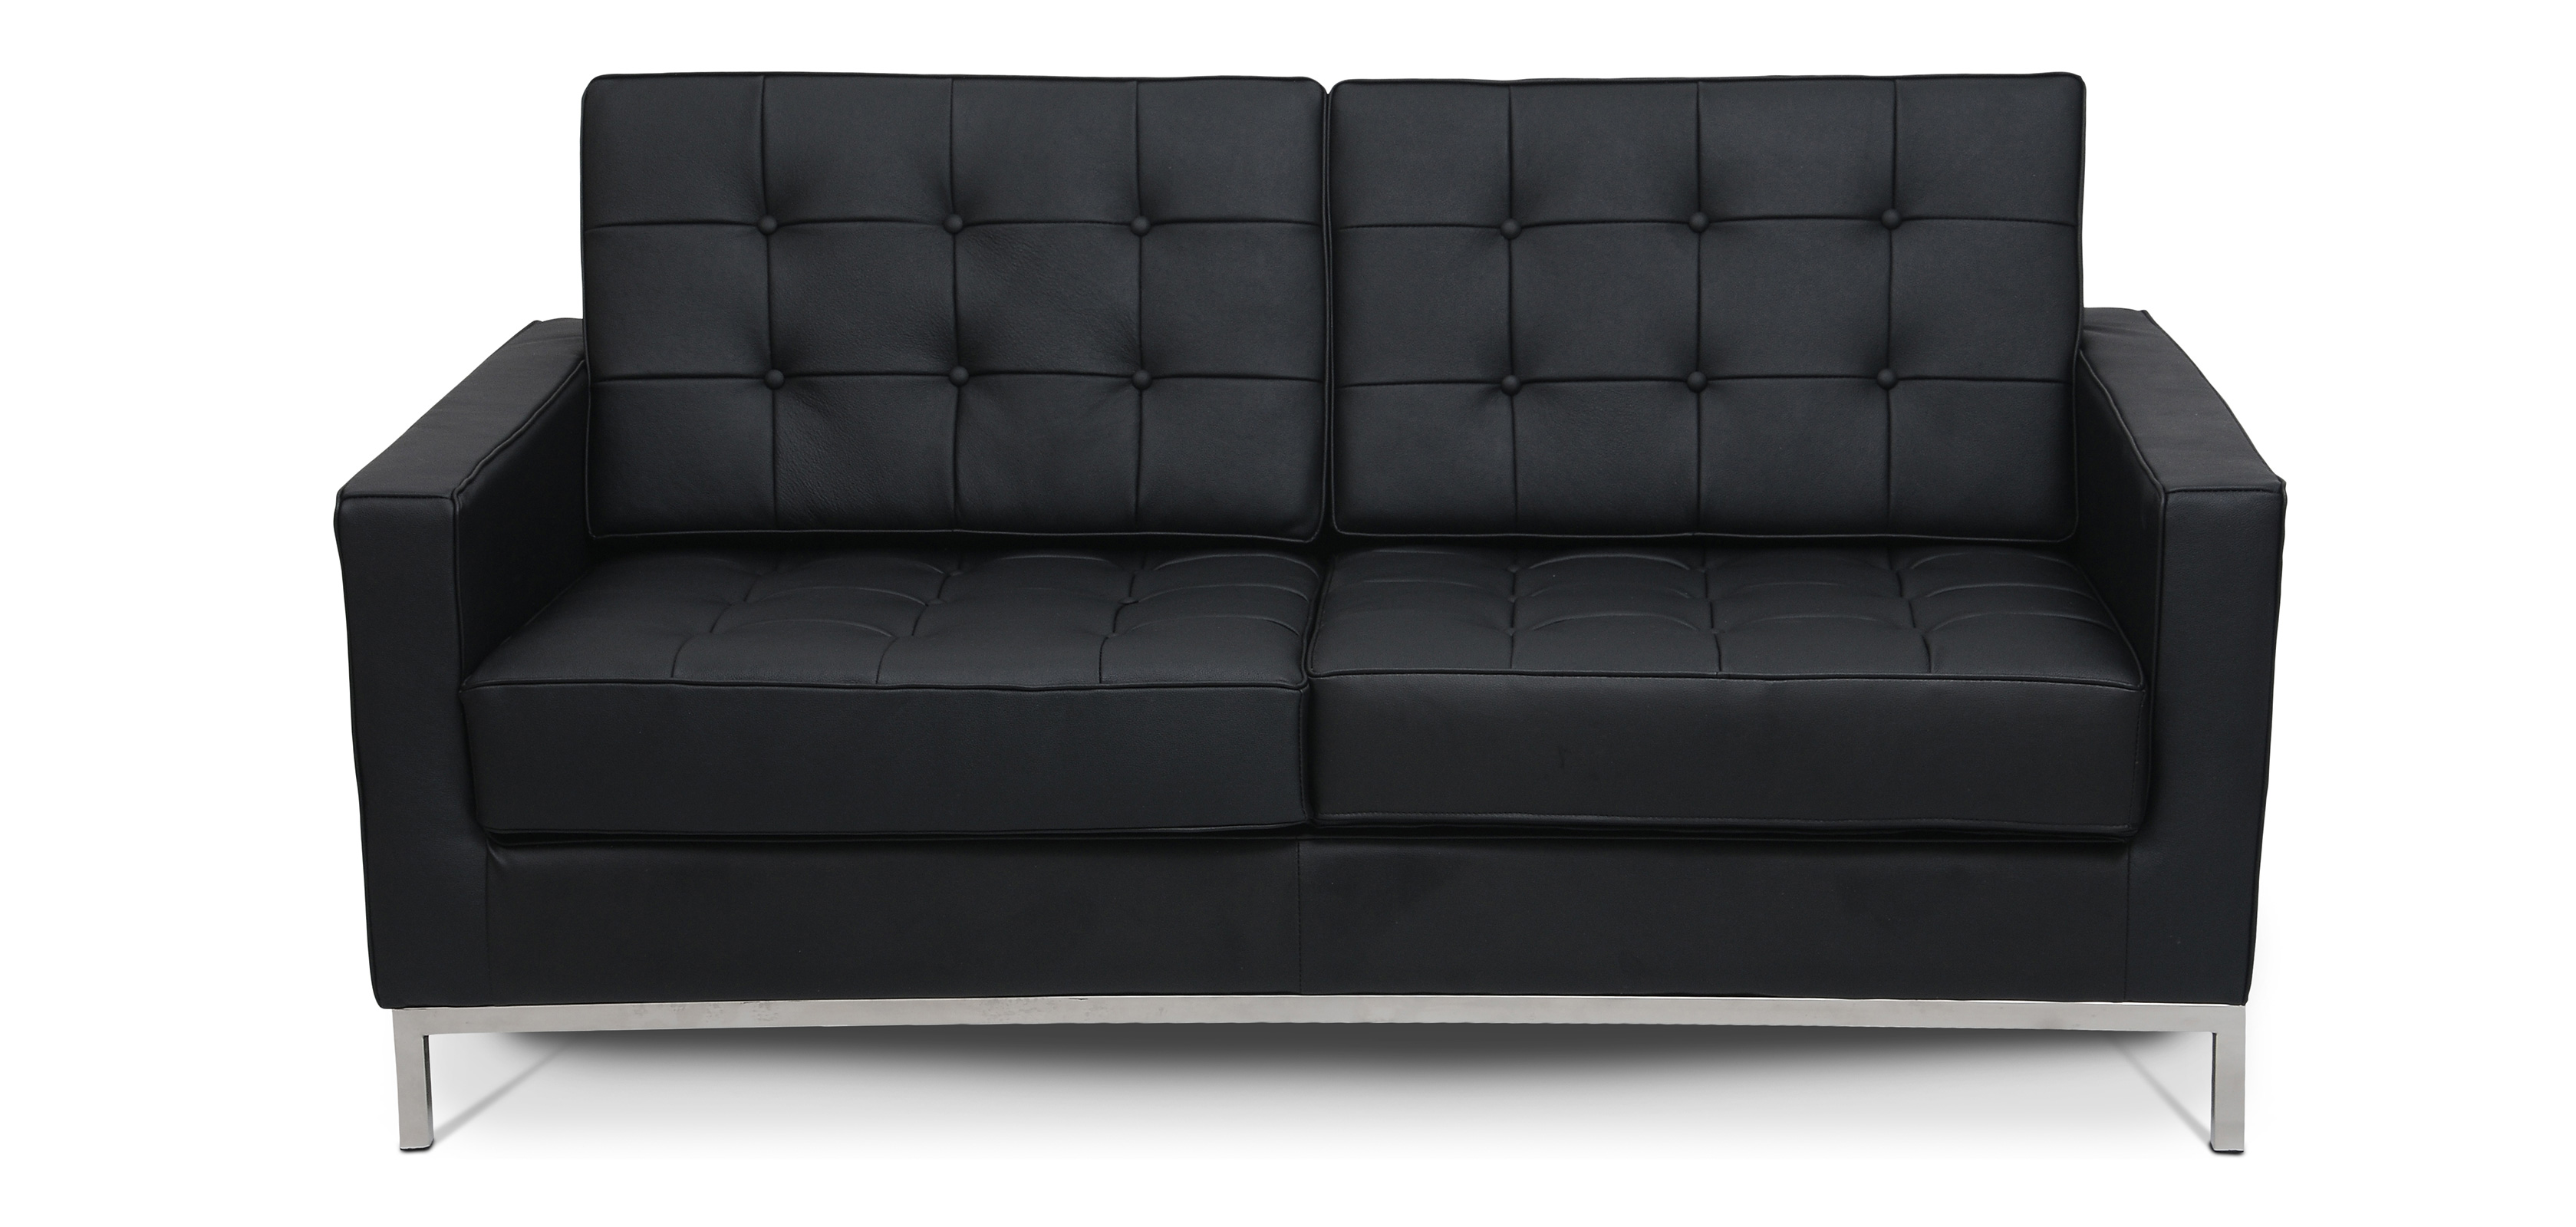 Design Sofa Florence Knoll style 2 seats Faux Leather 2